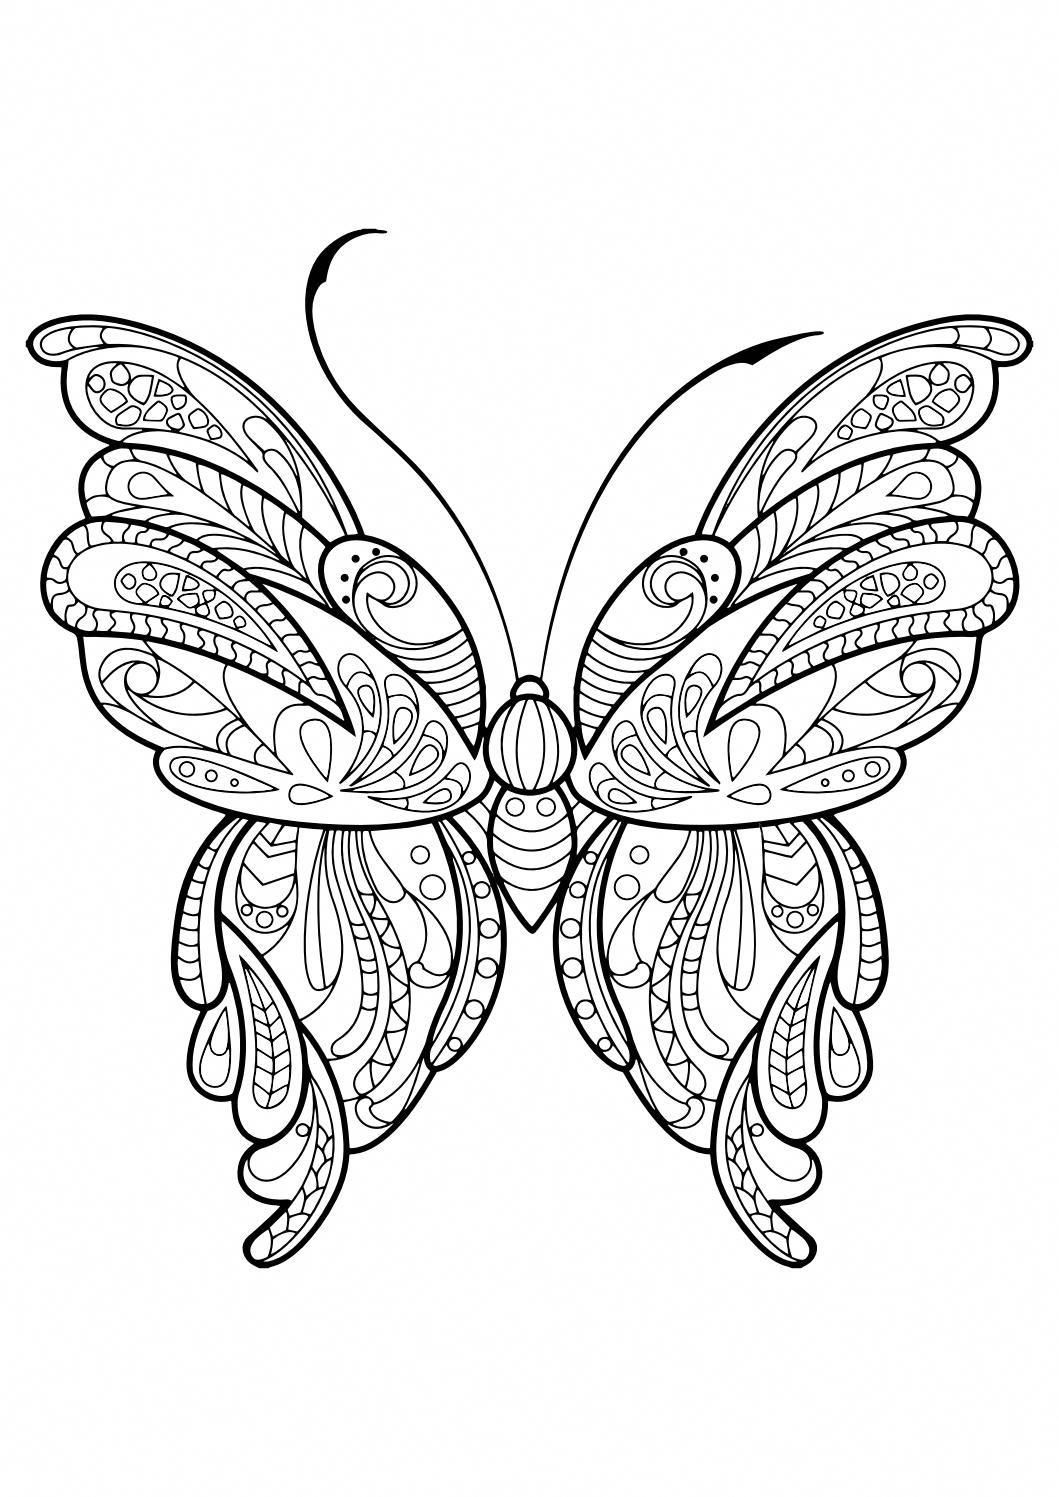 Guided Mindfulness Meditation Butterfly Coloring Page Easy